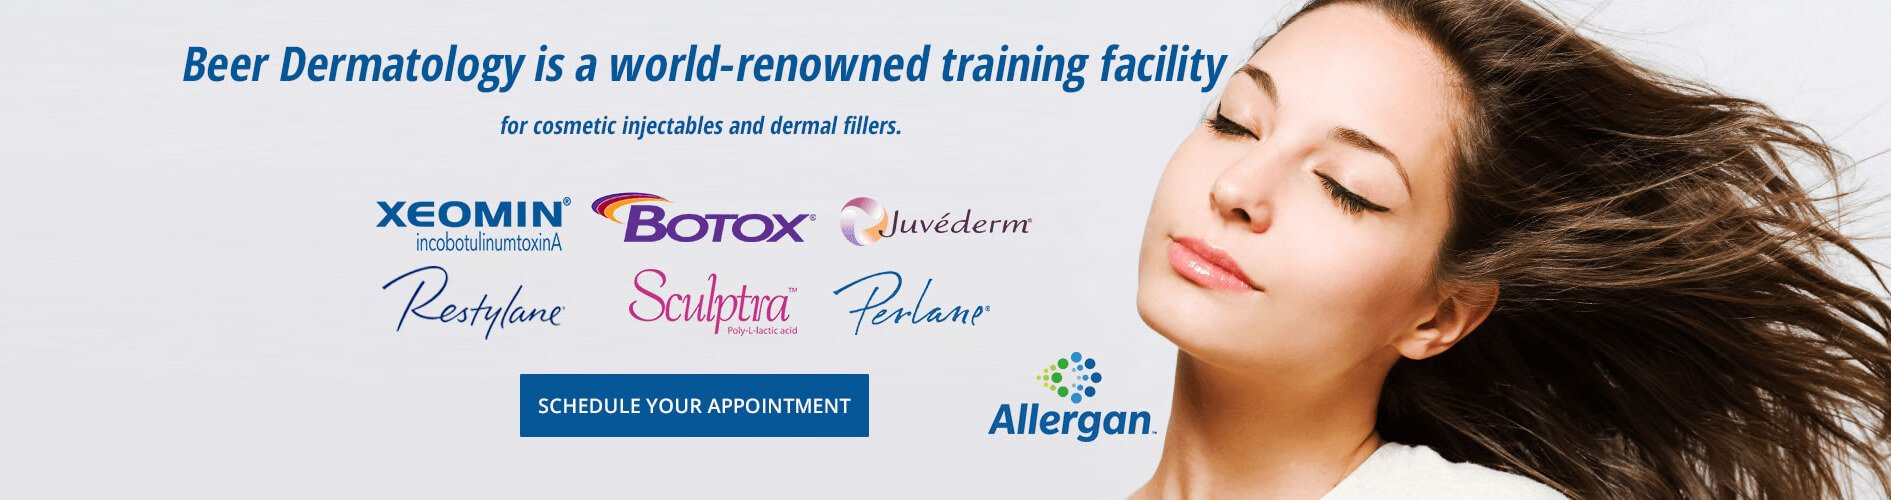 Beer Dermatology is a world-renowned training facility for cosmetic injectables and dermal fillers